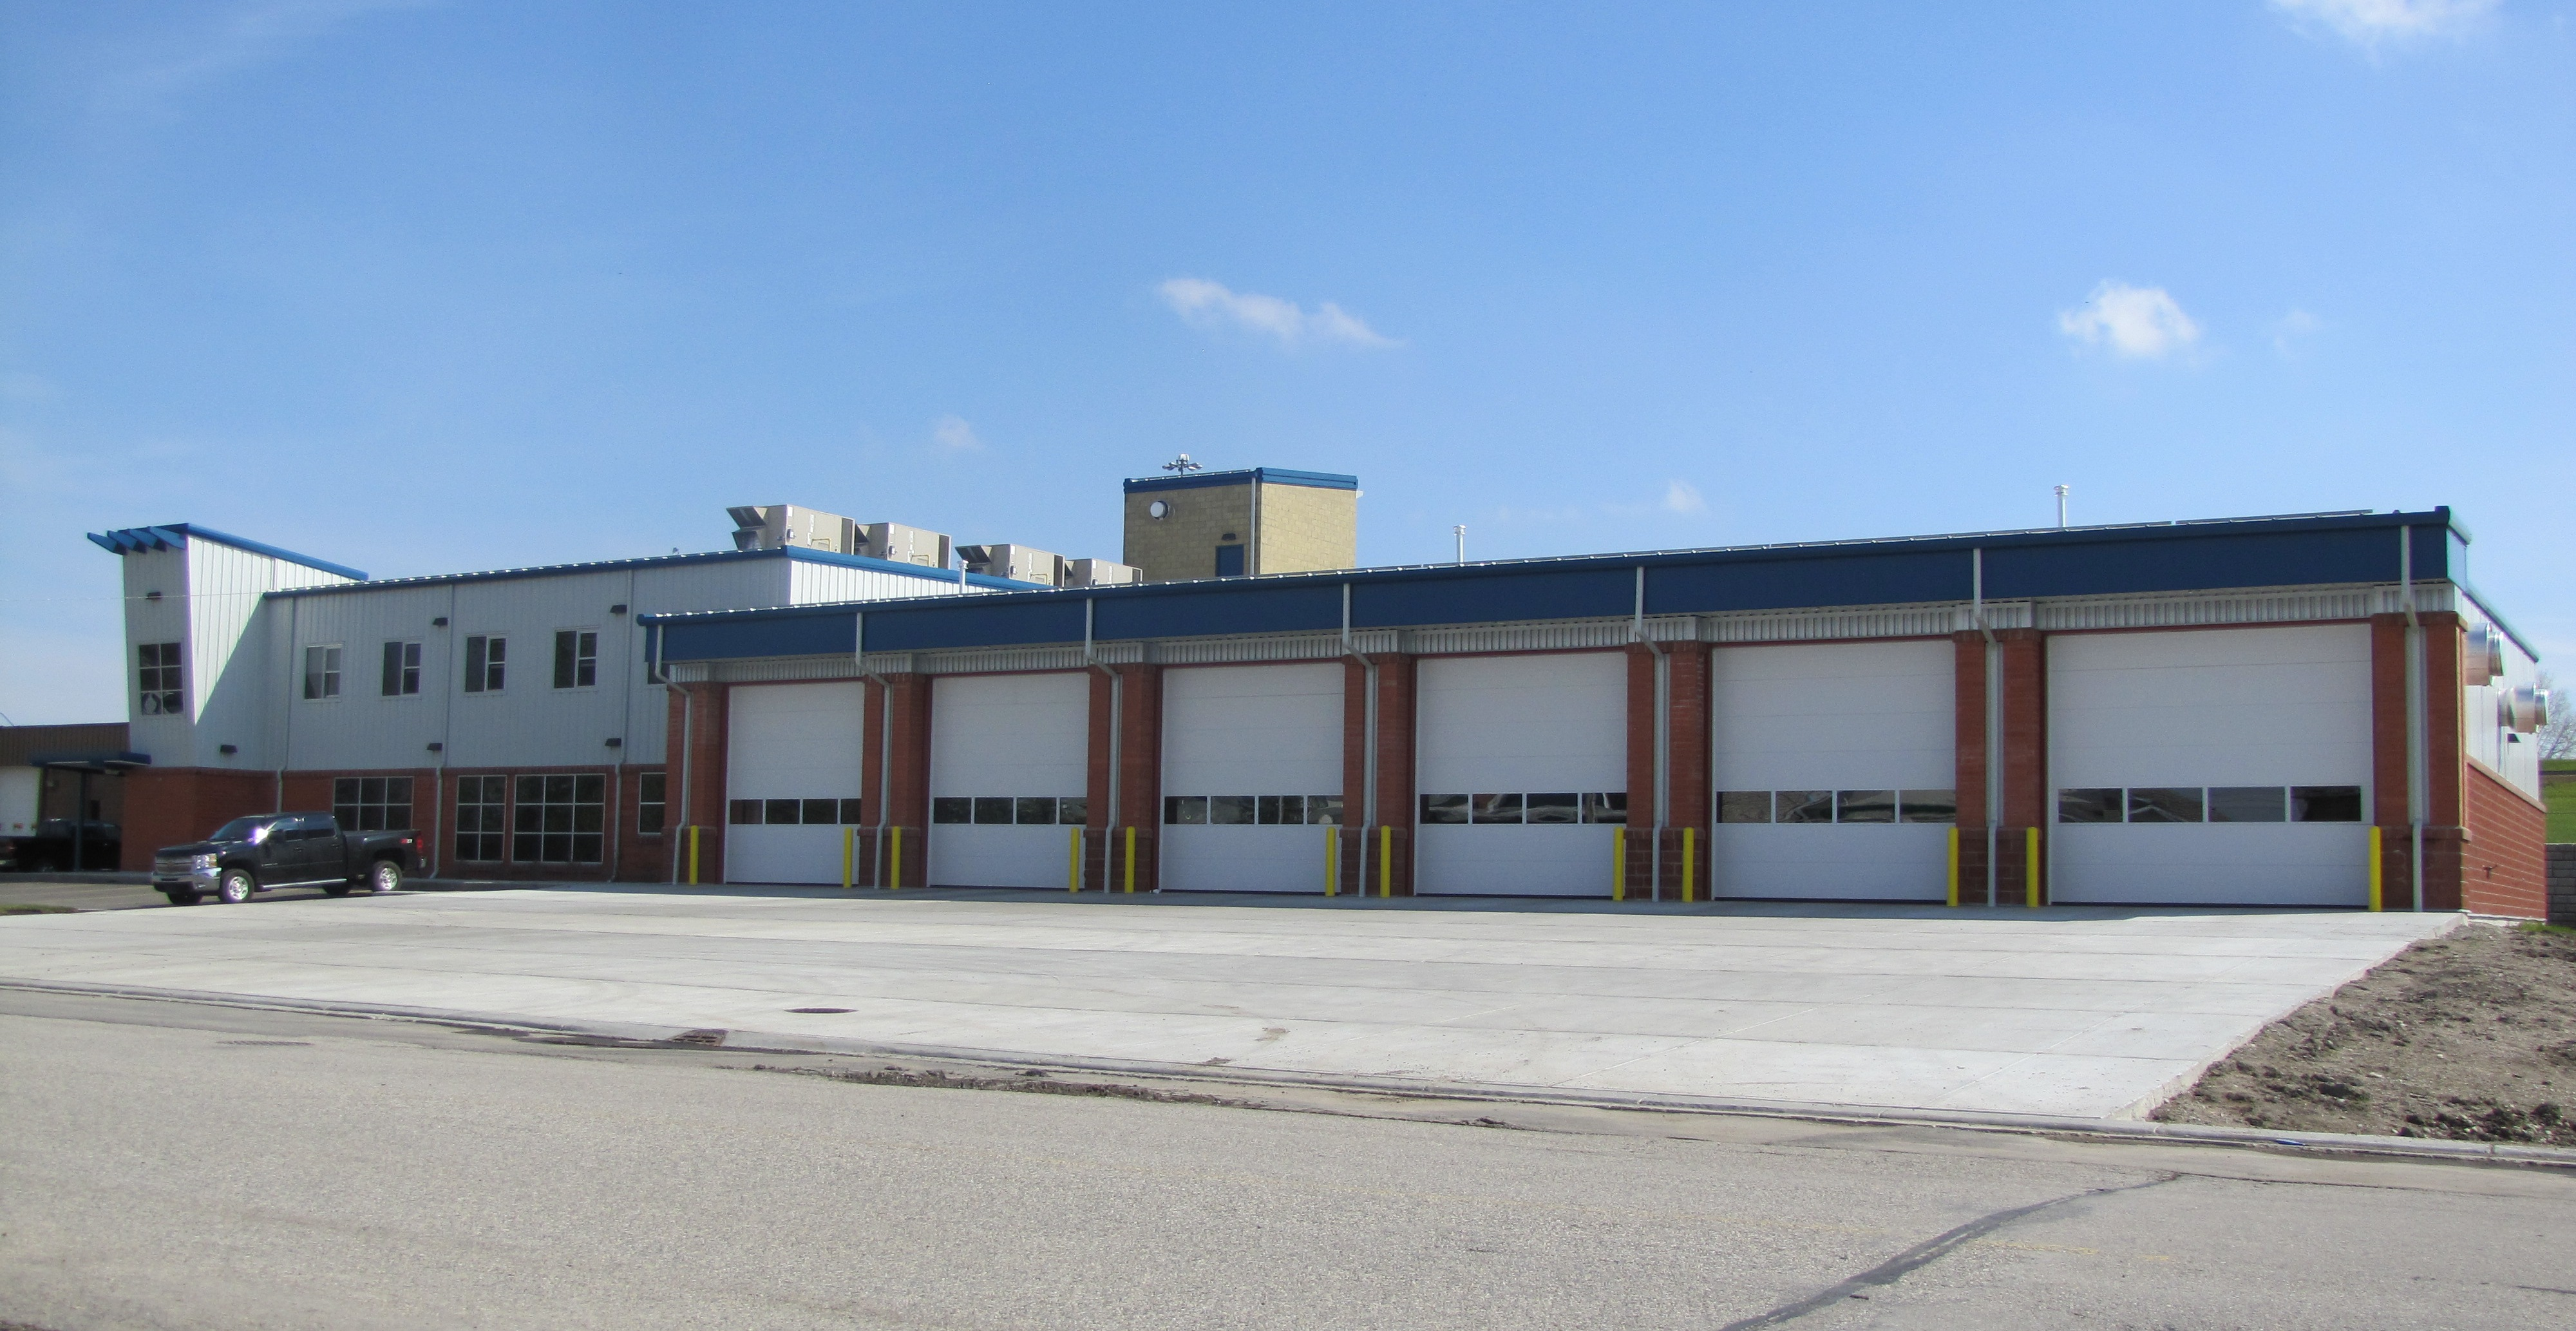 firehall cropped 2